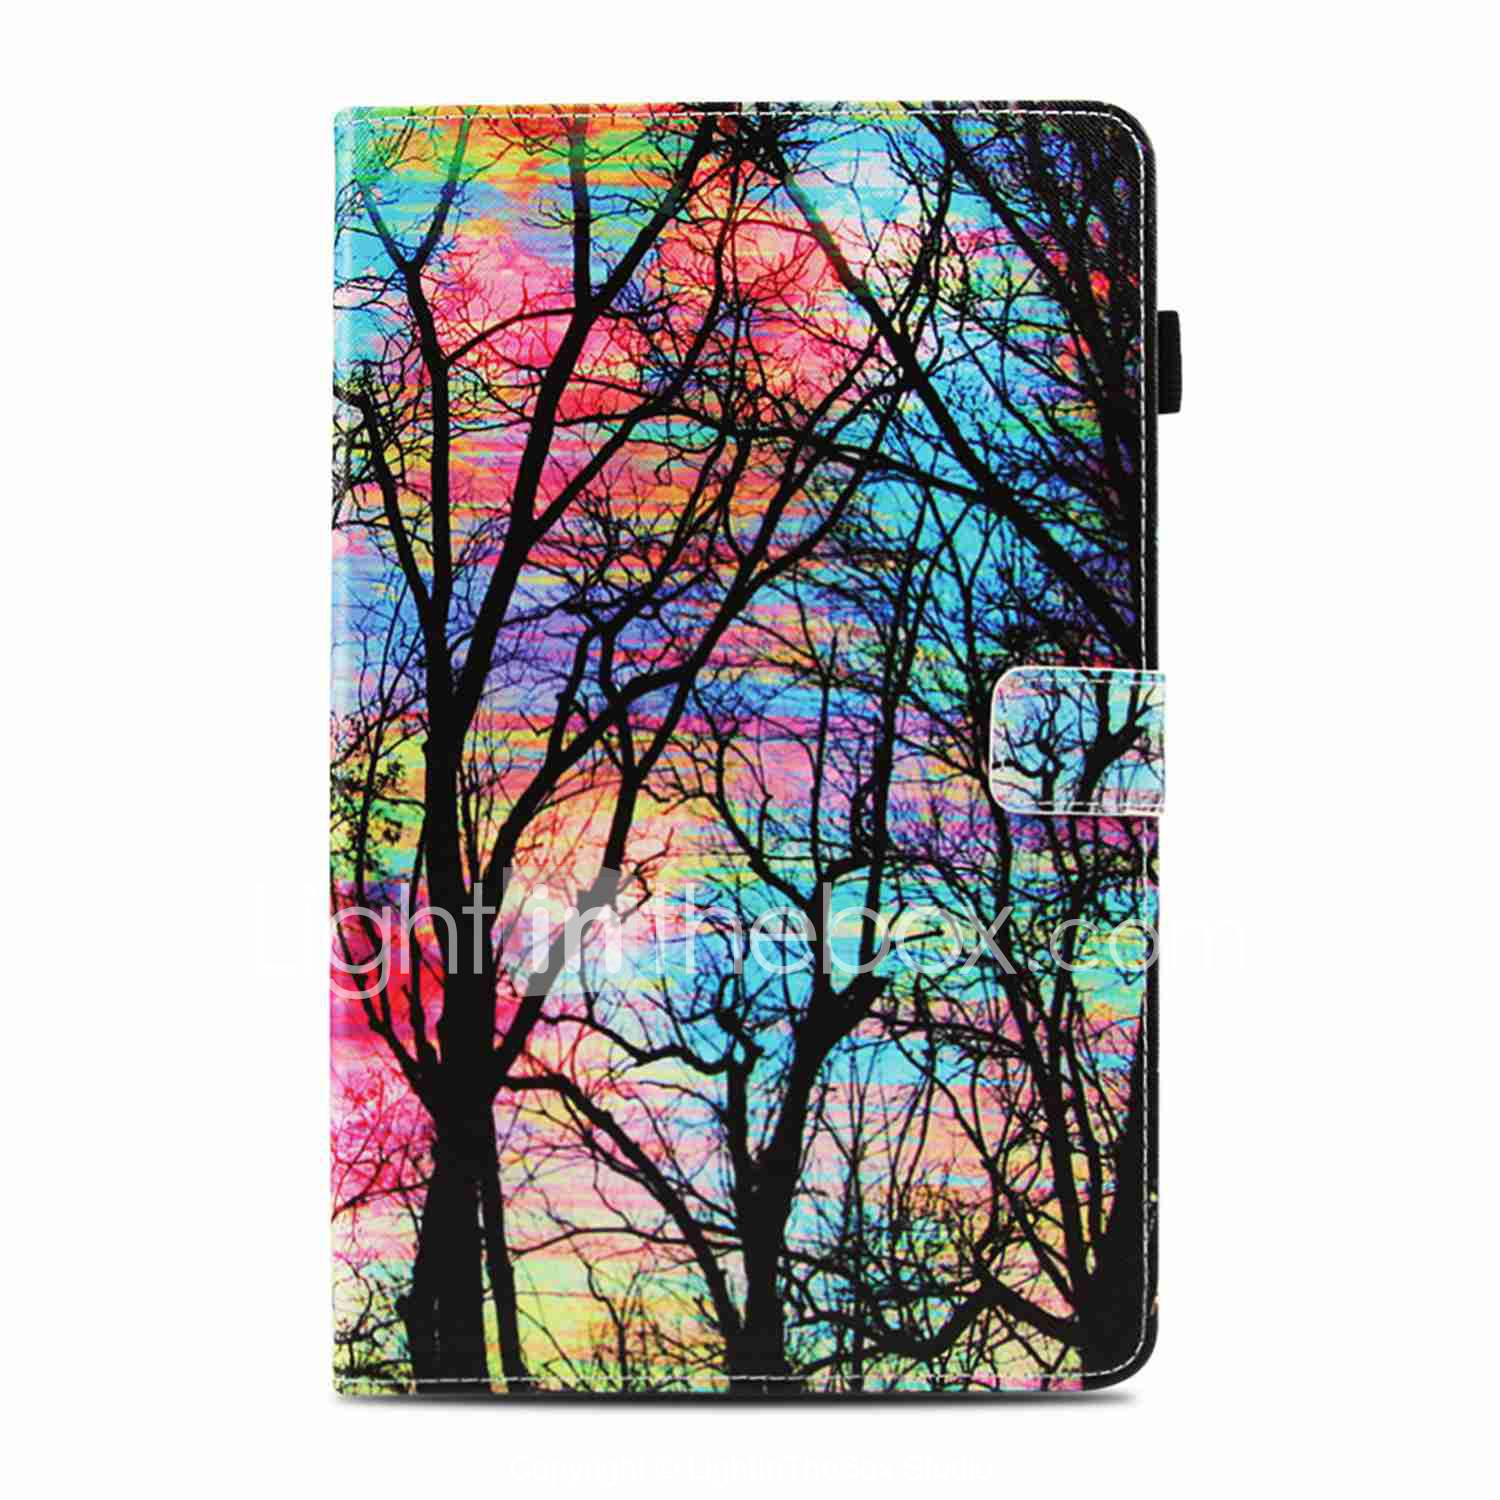 samsung galaxy tab s4 full body case